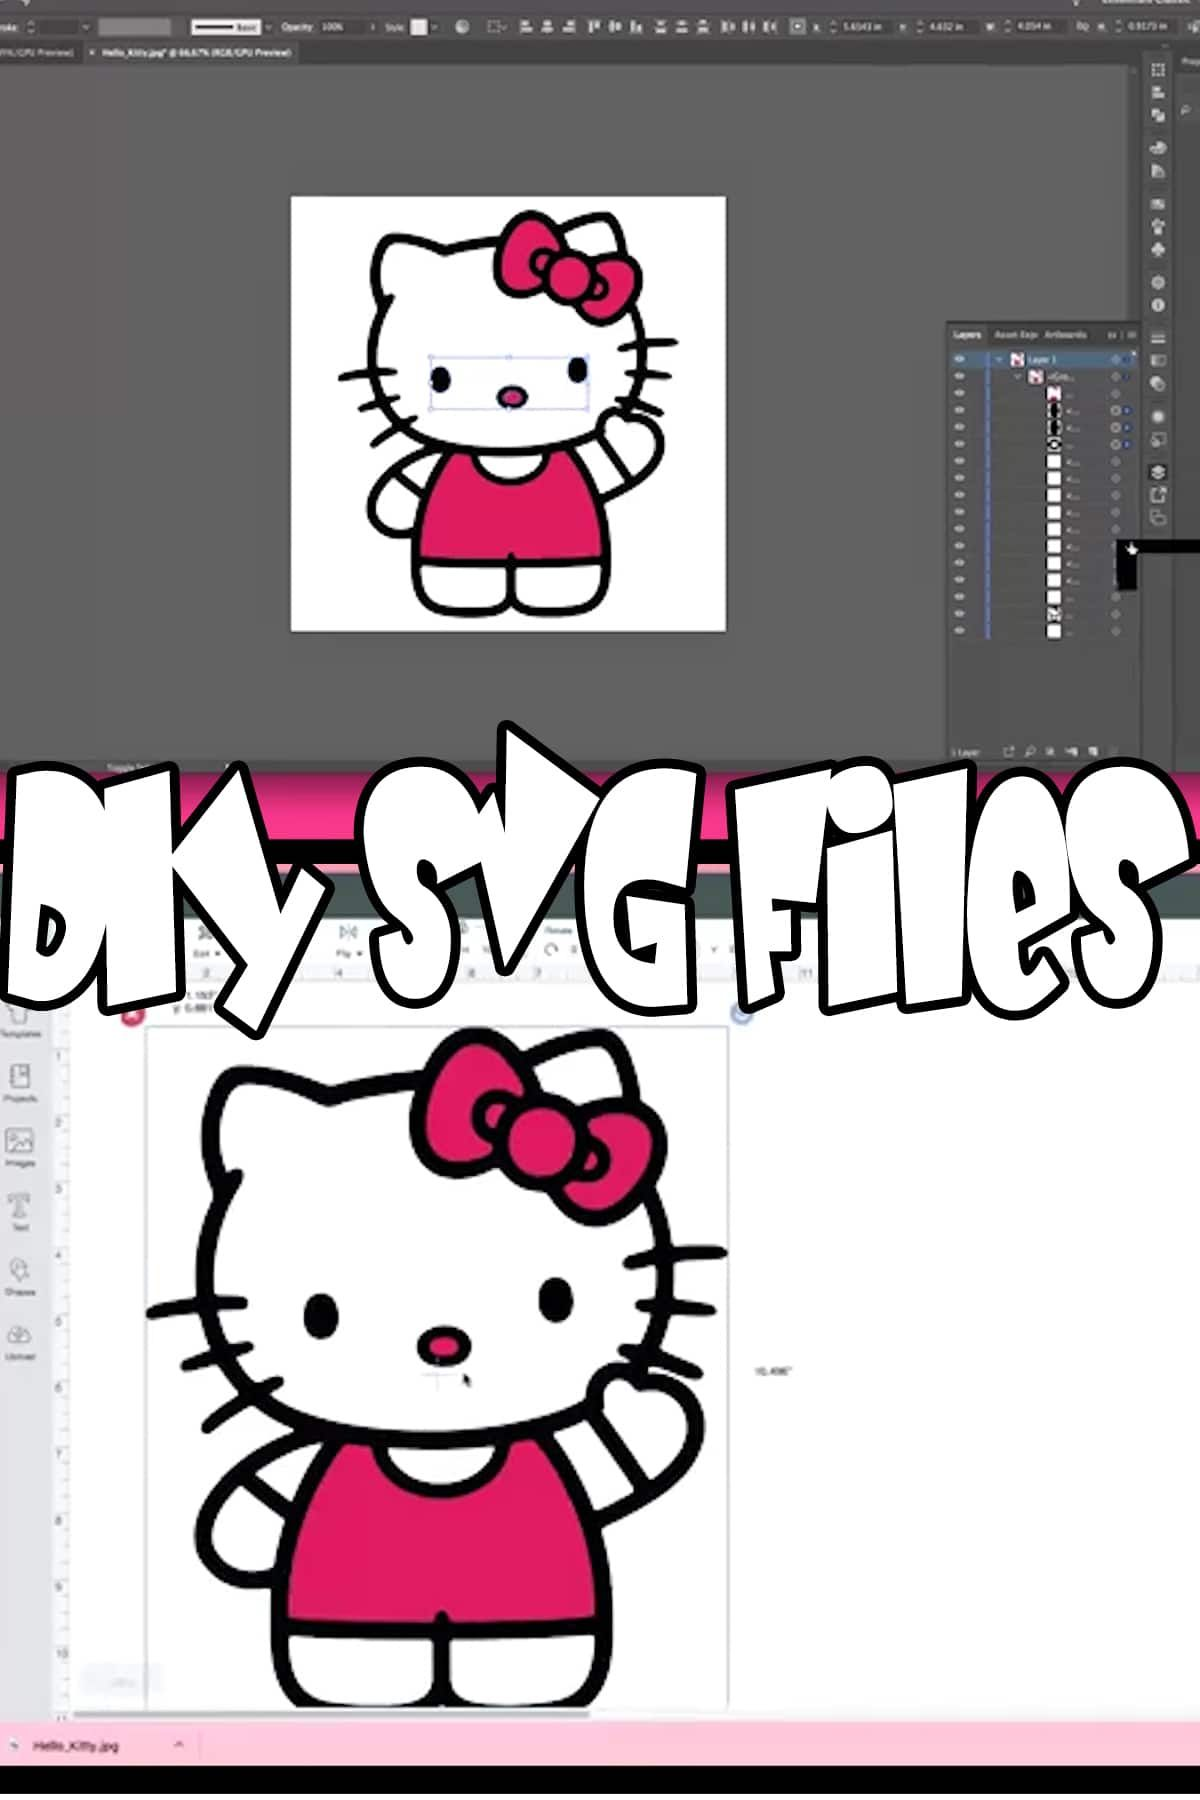 How To Make SVG Files in 2020 Cricut design, Upcycle diy